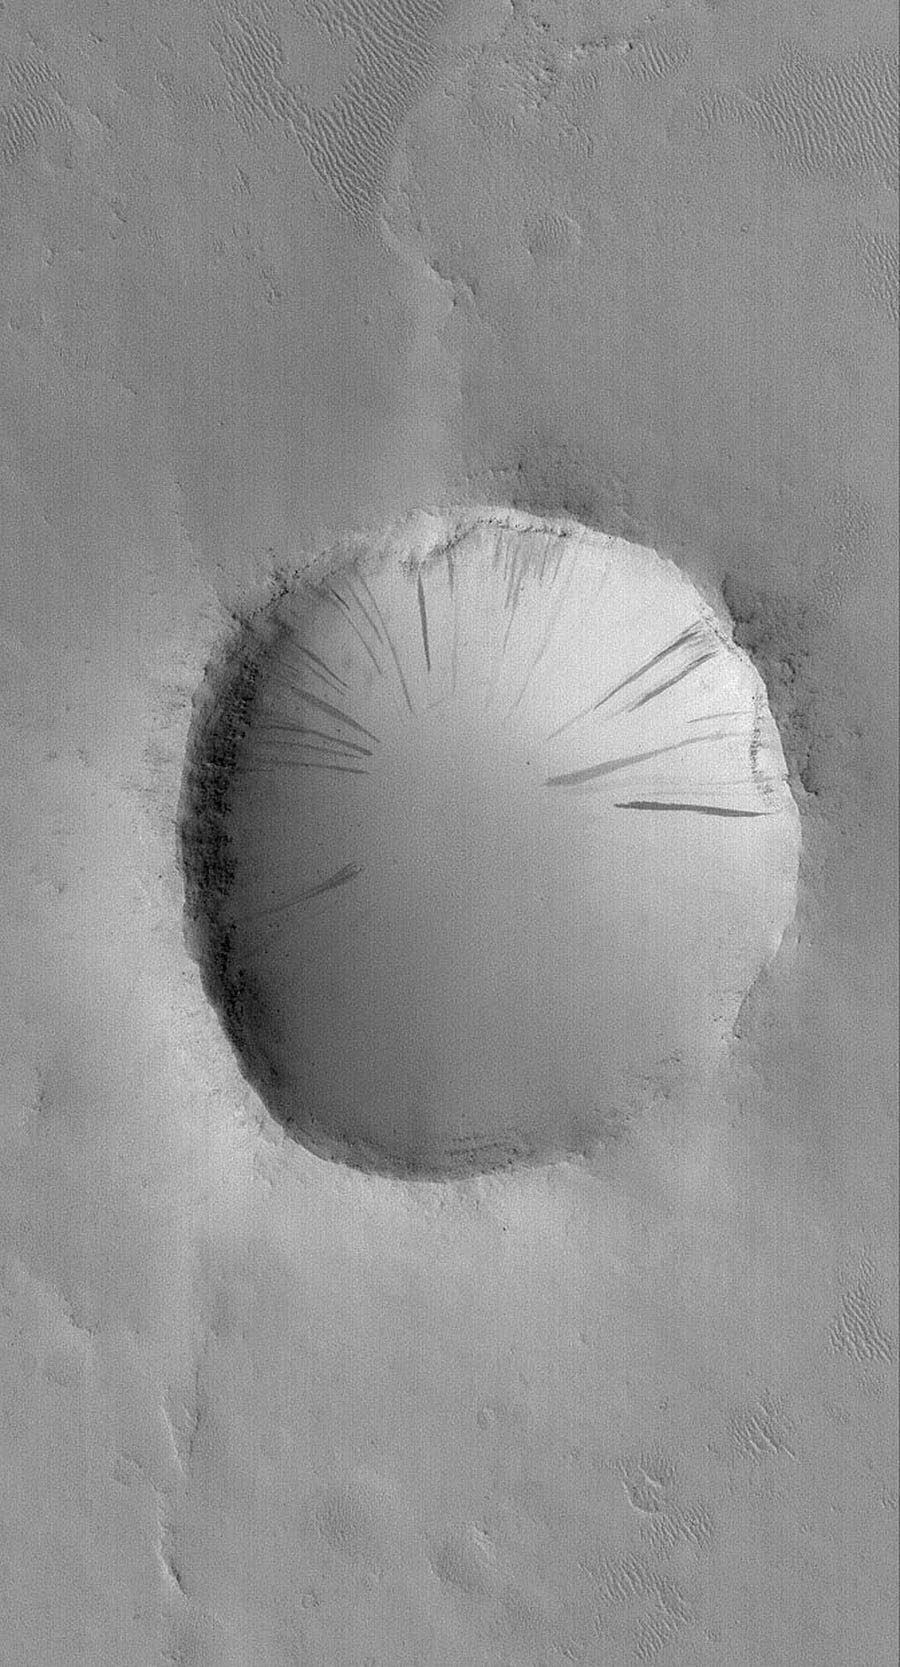 NASA's Mars Global Surveyor shows an old impact crater in southeastern Arabia Terra on Mars. The crater ejecta blanket is no longer visible and all of the terrain has been covered by a mantle of dust.